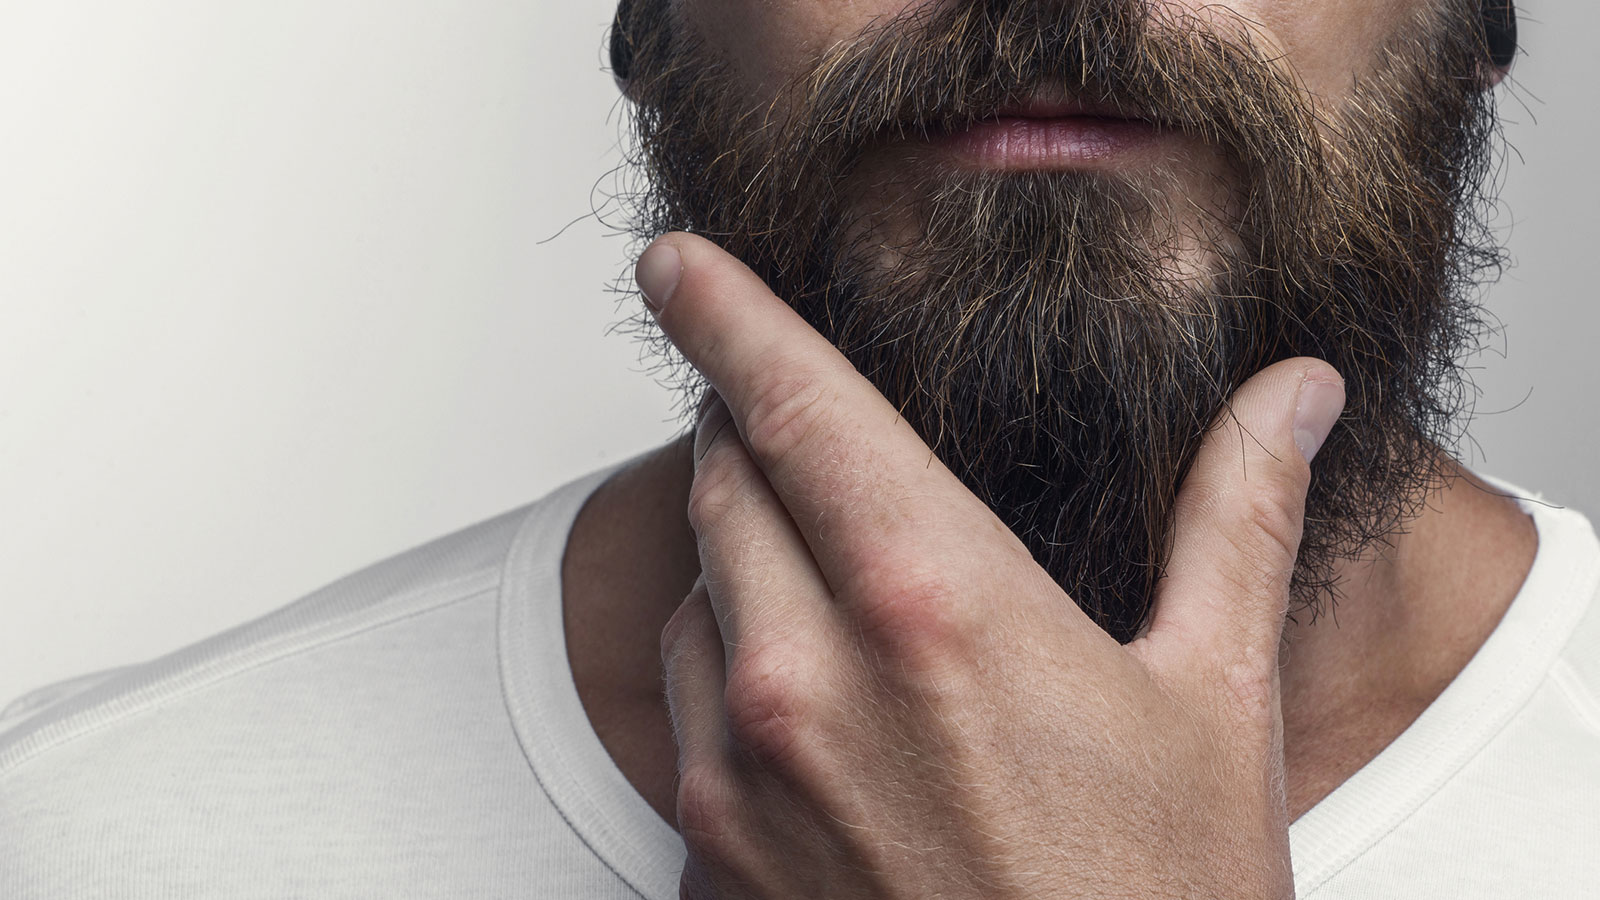 Can You Get Lice in Your Beard? | HowStuffWorks